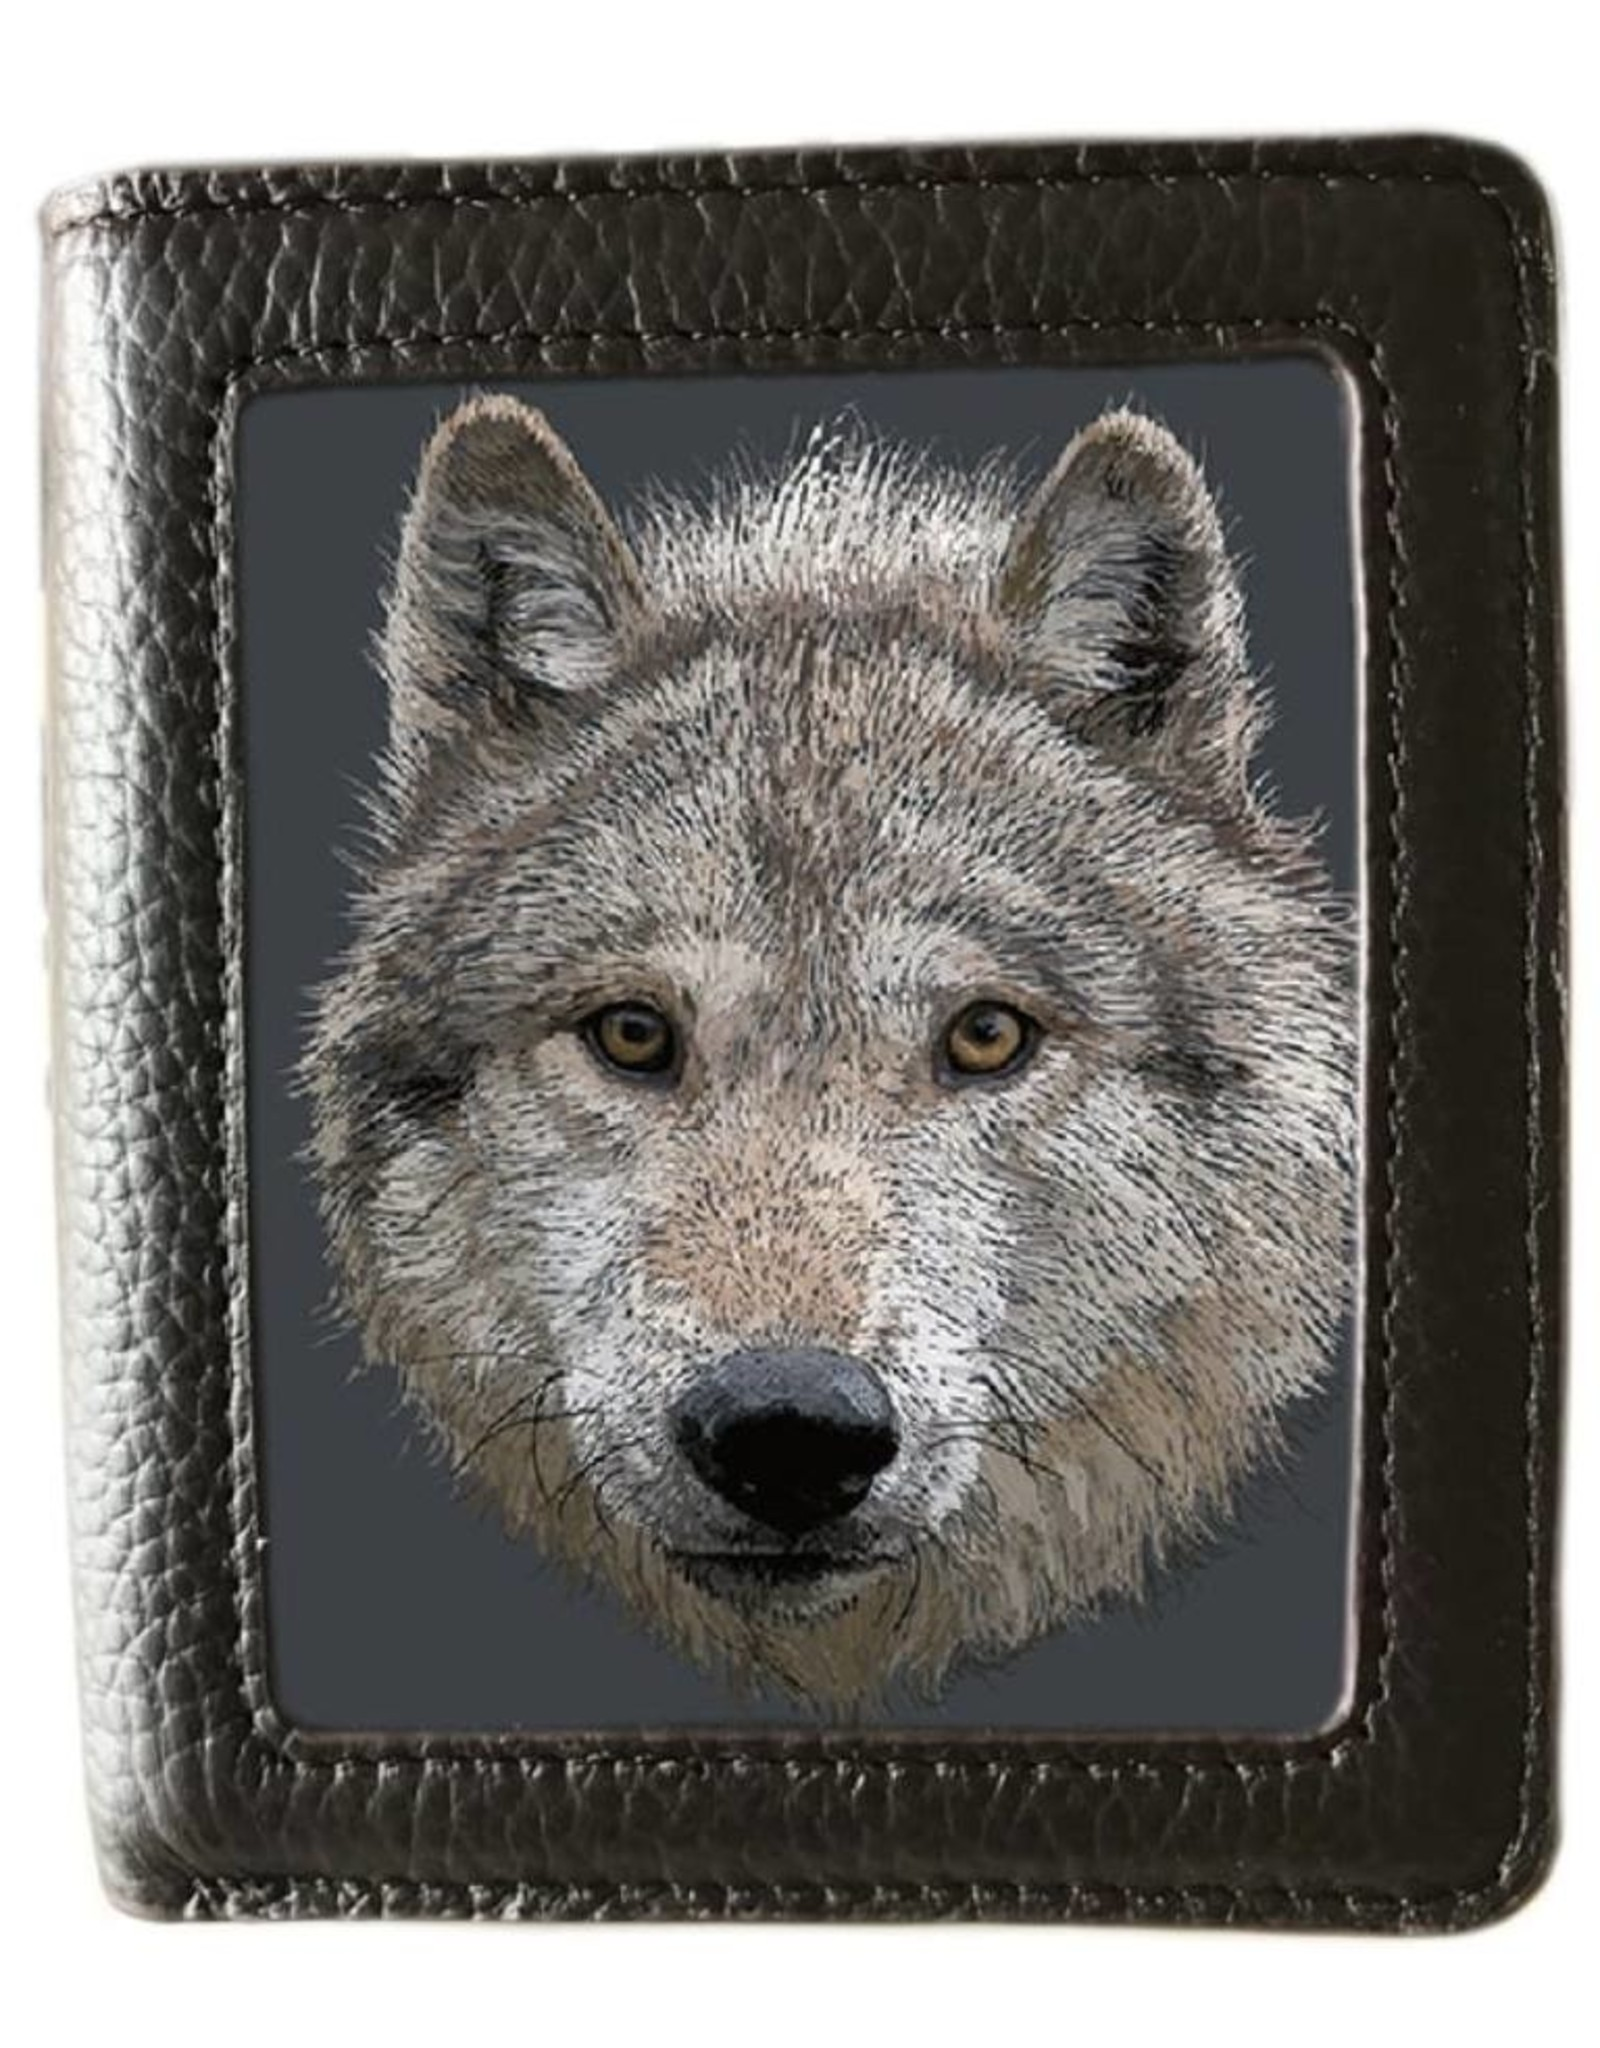 Caszmy 3D portemonnees - Caszmy Collection 3D  portemonnee Wolf Stare